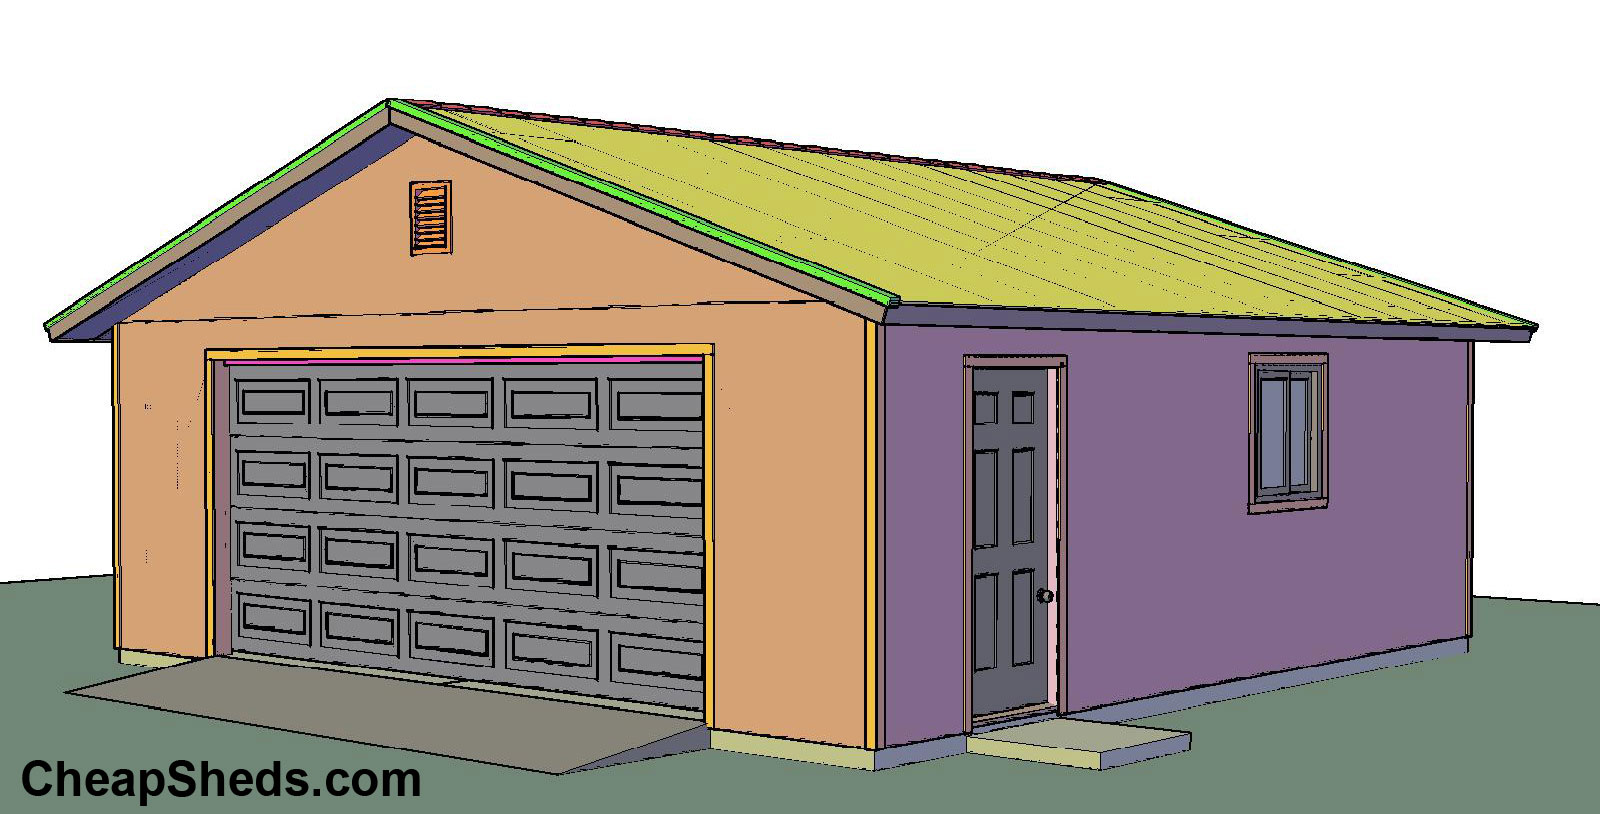 How to build and frame a 1 2 3 4 car garage plans for 2 car garage door width